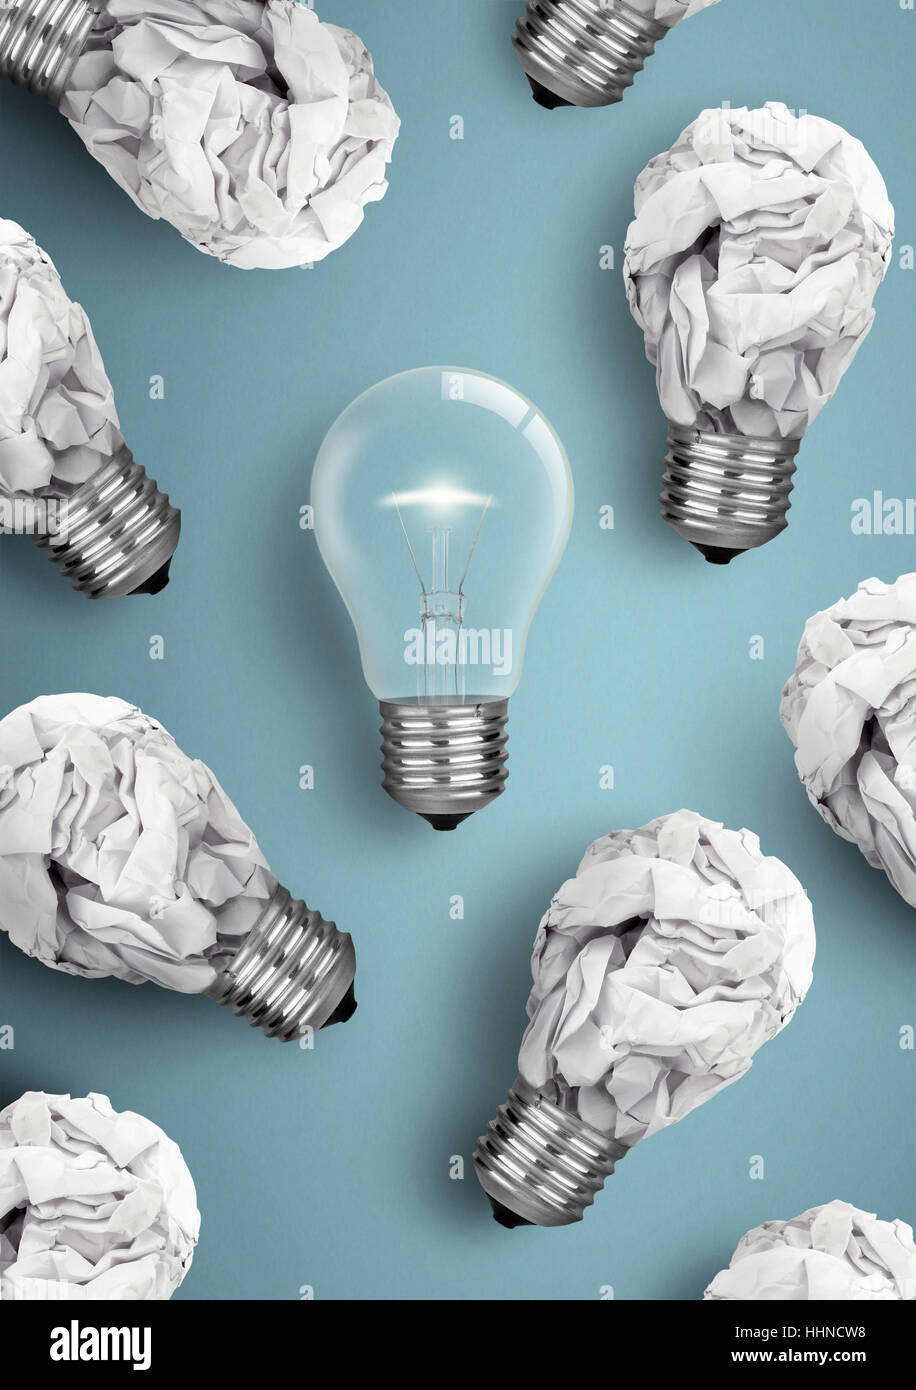 Creative idea concept, crumpled paper bulbs - Stock Image